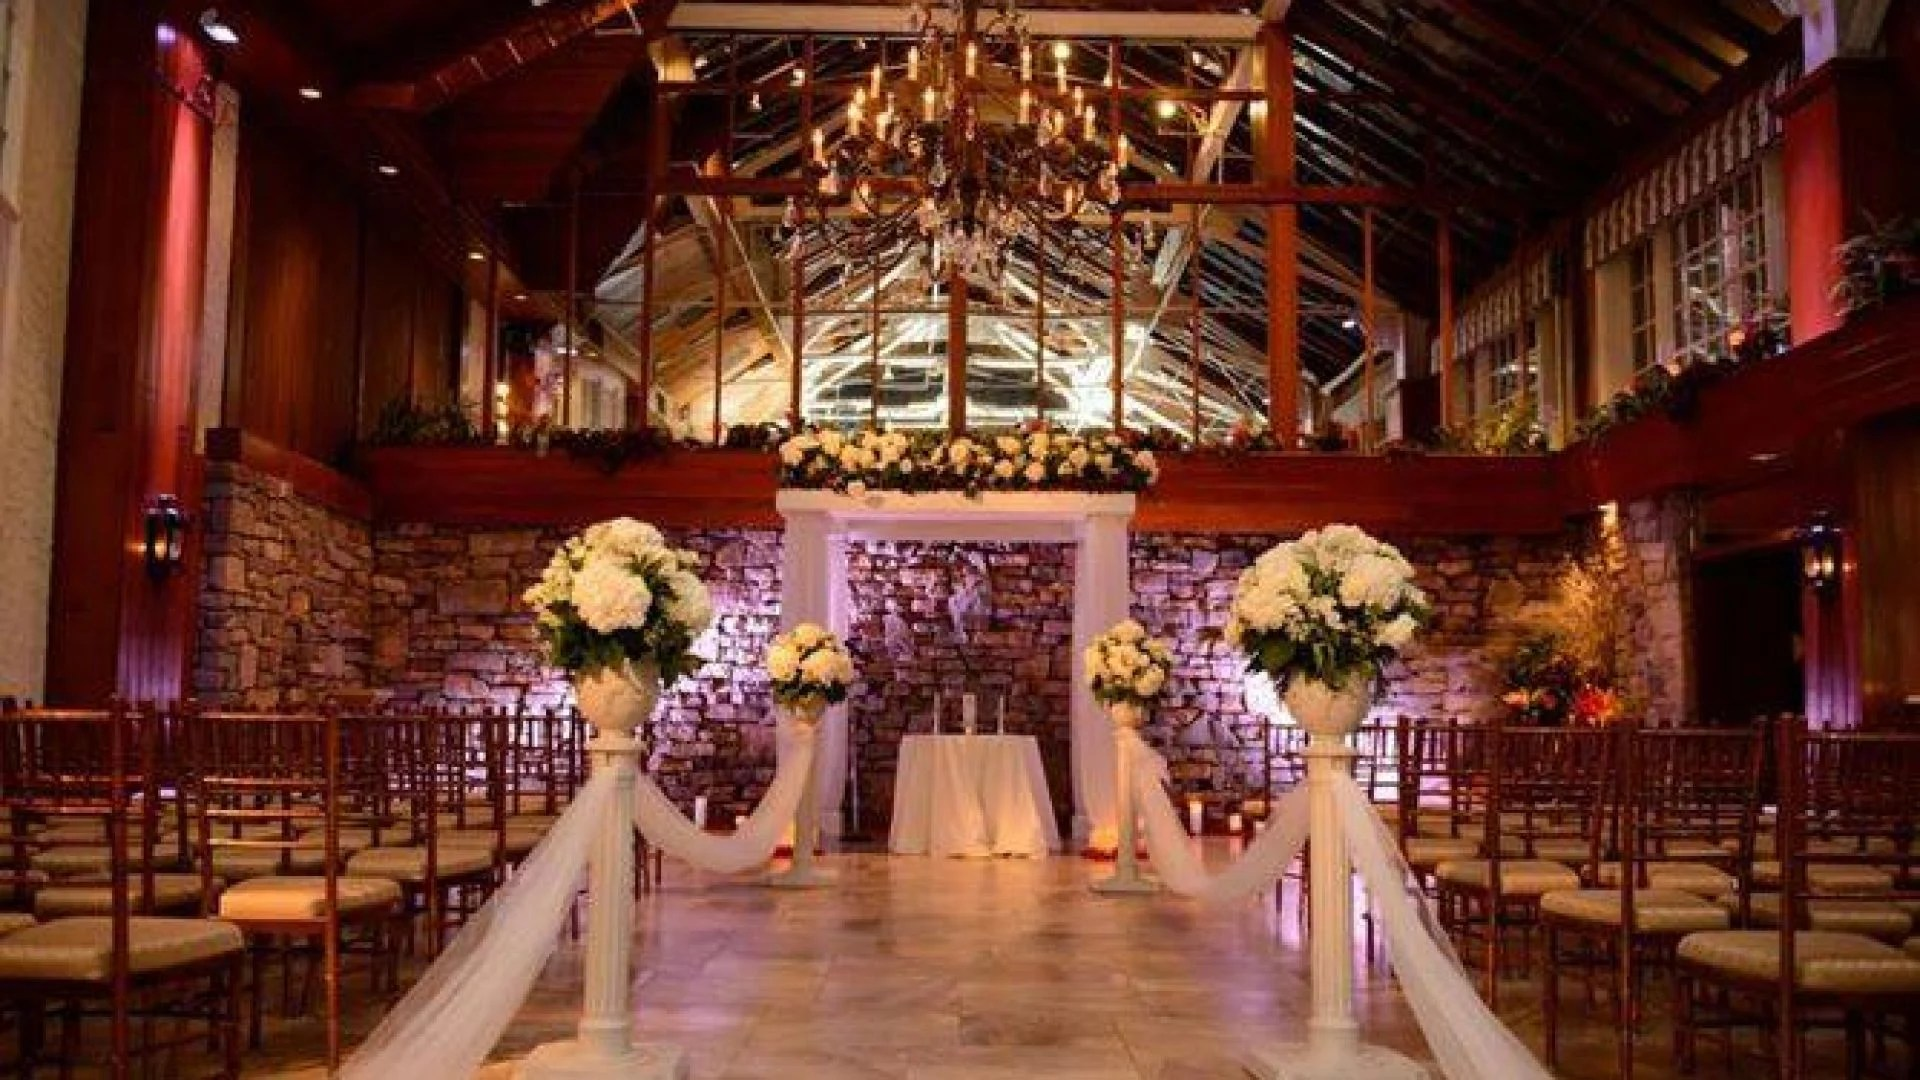 Restaurant Supply Long Island Wedding Venues On Long Island Fox Hollow